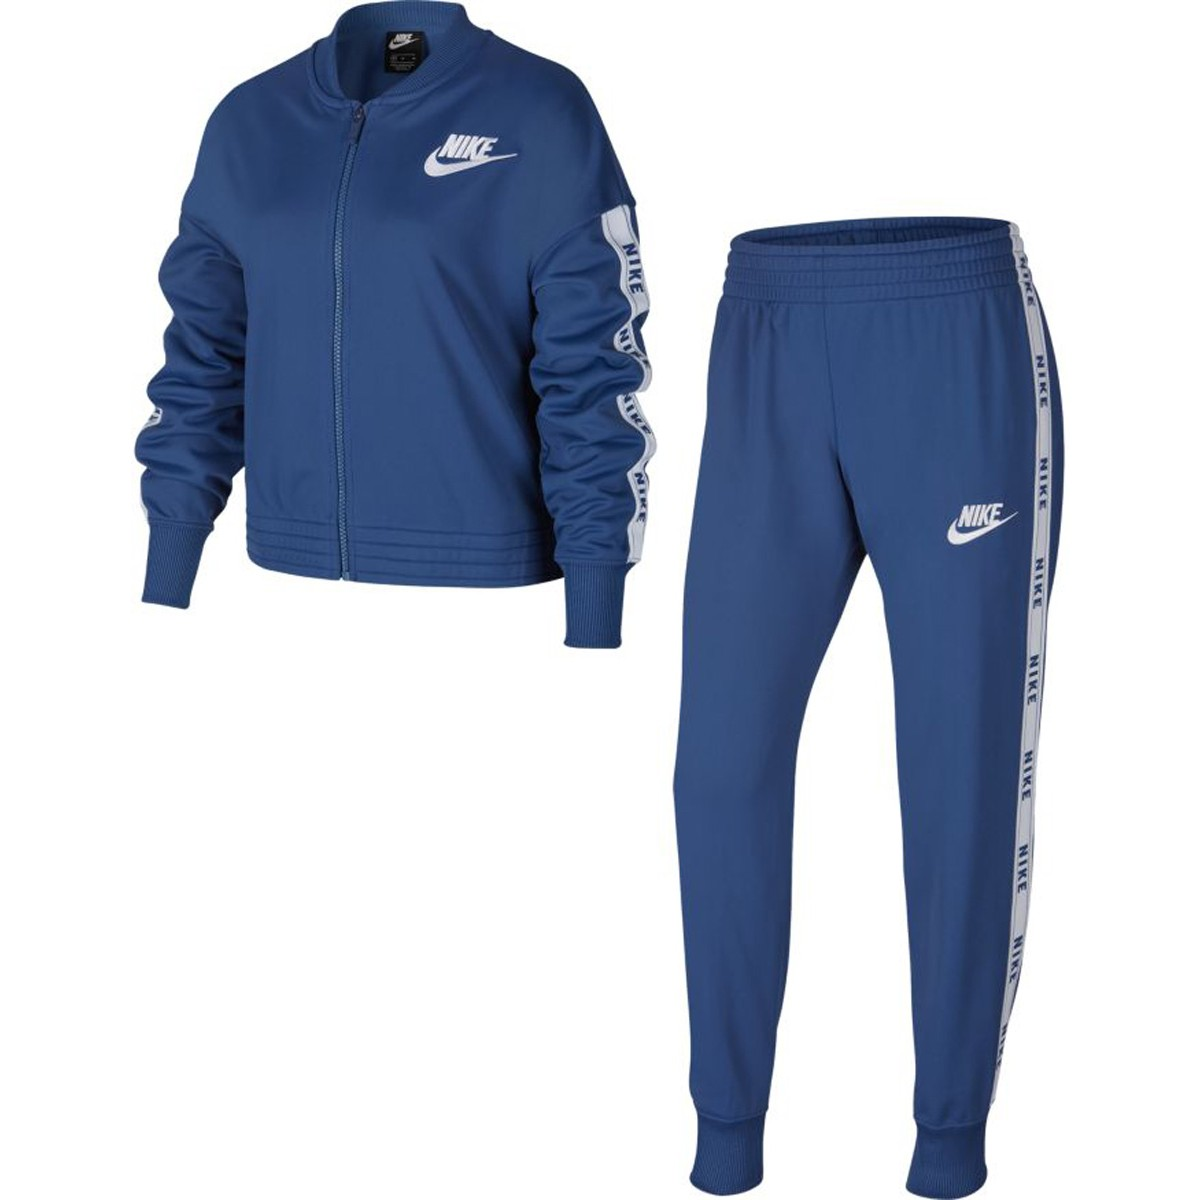 NIKE JUNIOR TRICOT MEISJES TRAININGSPAK NIKE Junior